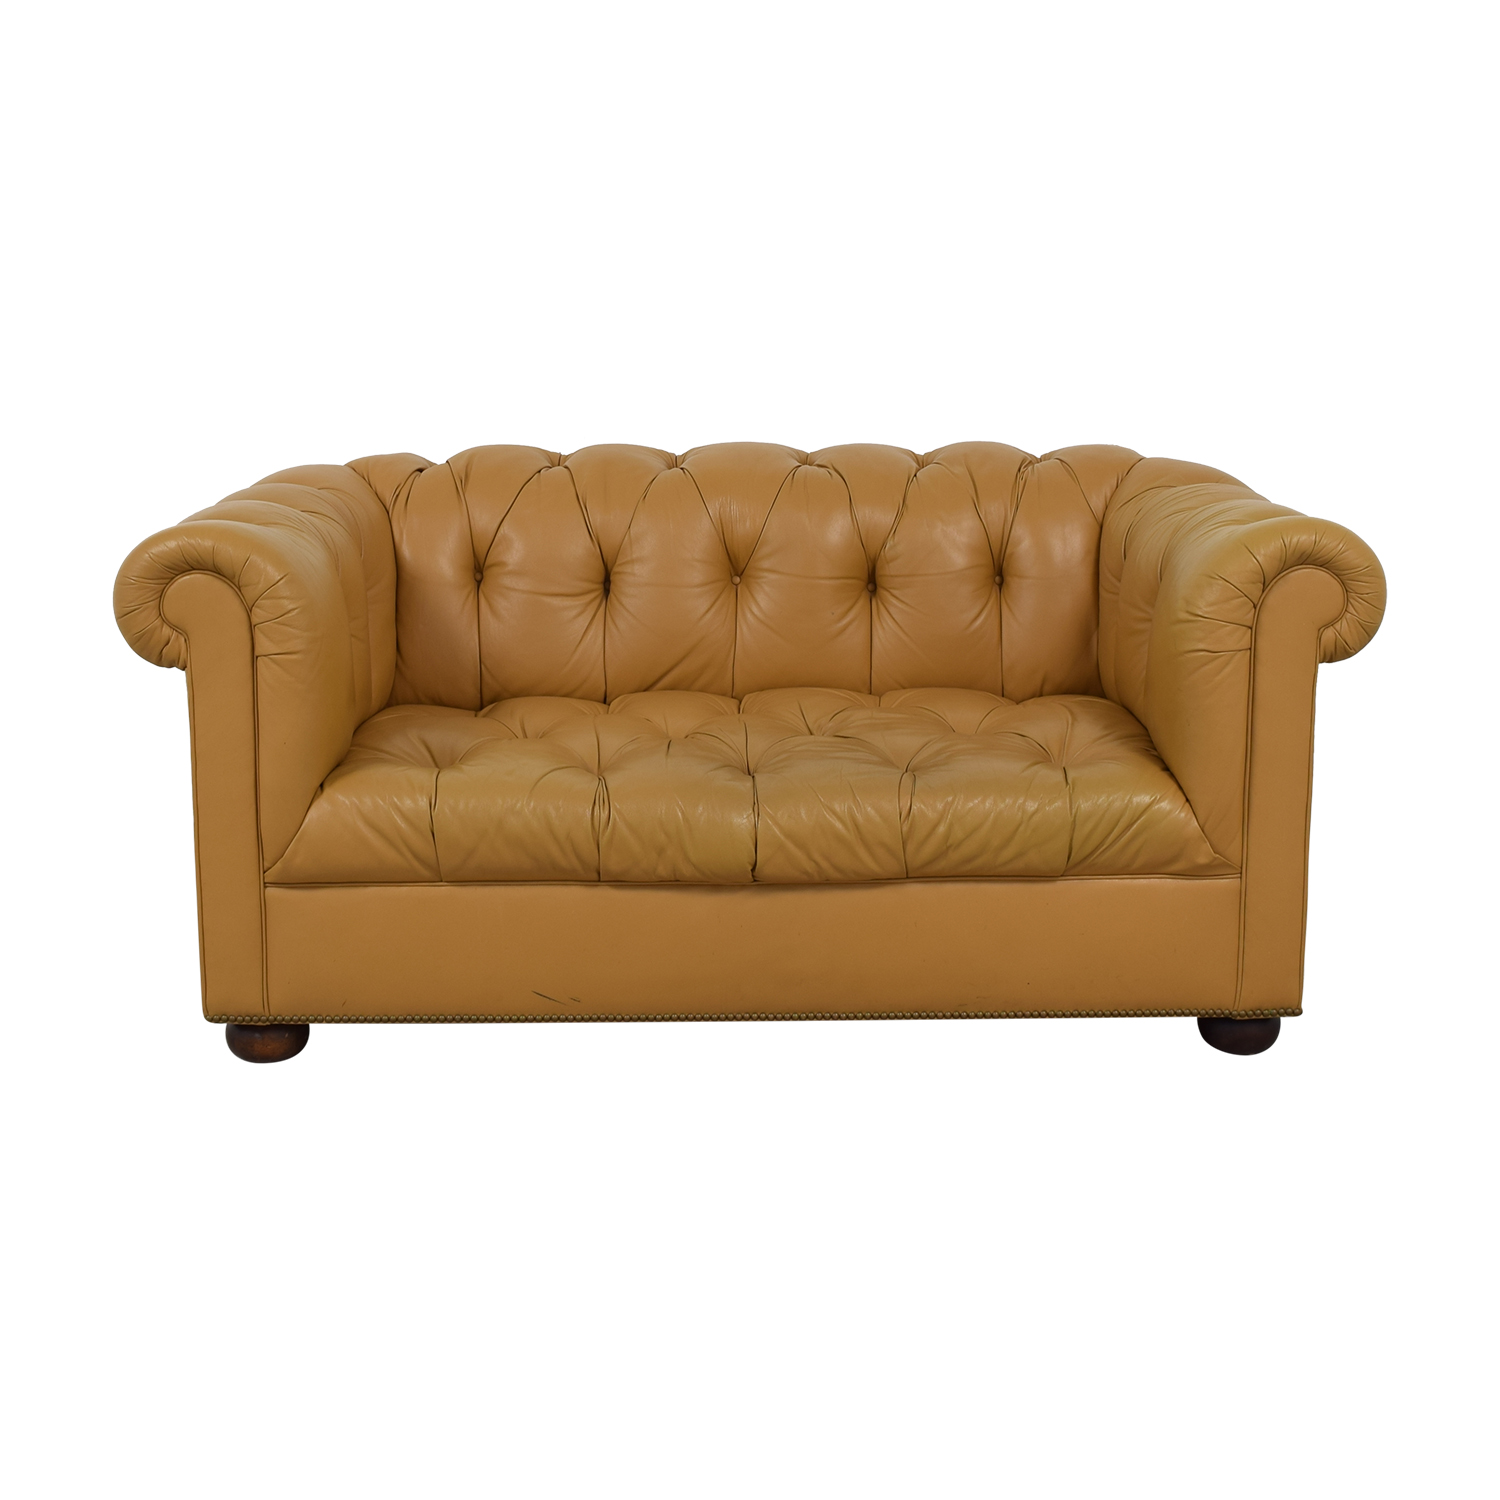 Tan Tufted Single-Cushion Couch discount